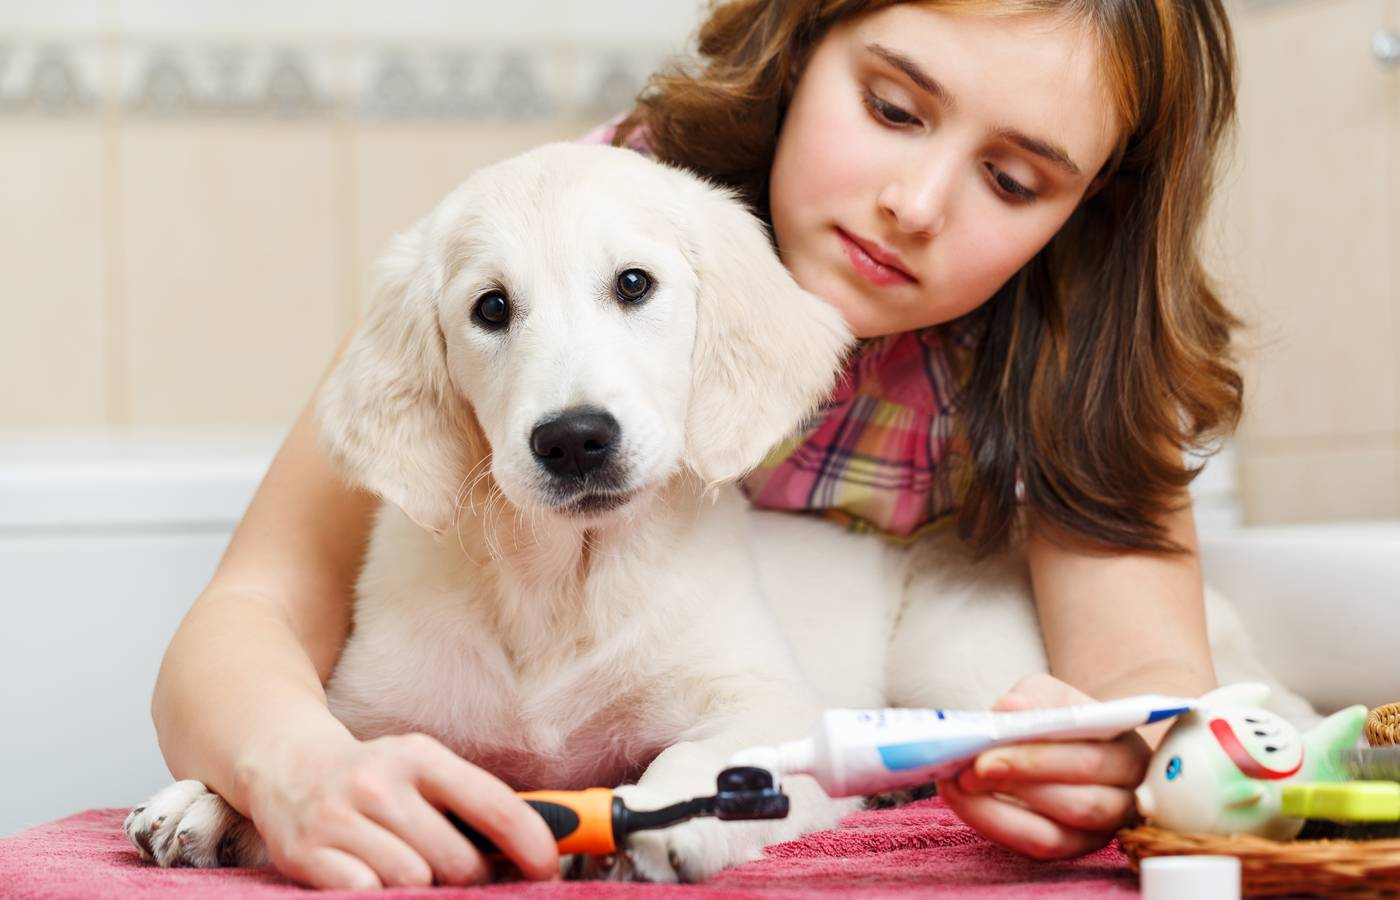 dog teeth brushing toothpaste services cleaning pups silky pet dogs dogi healthy